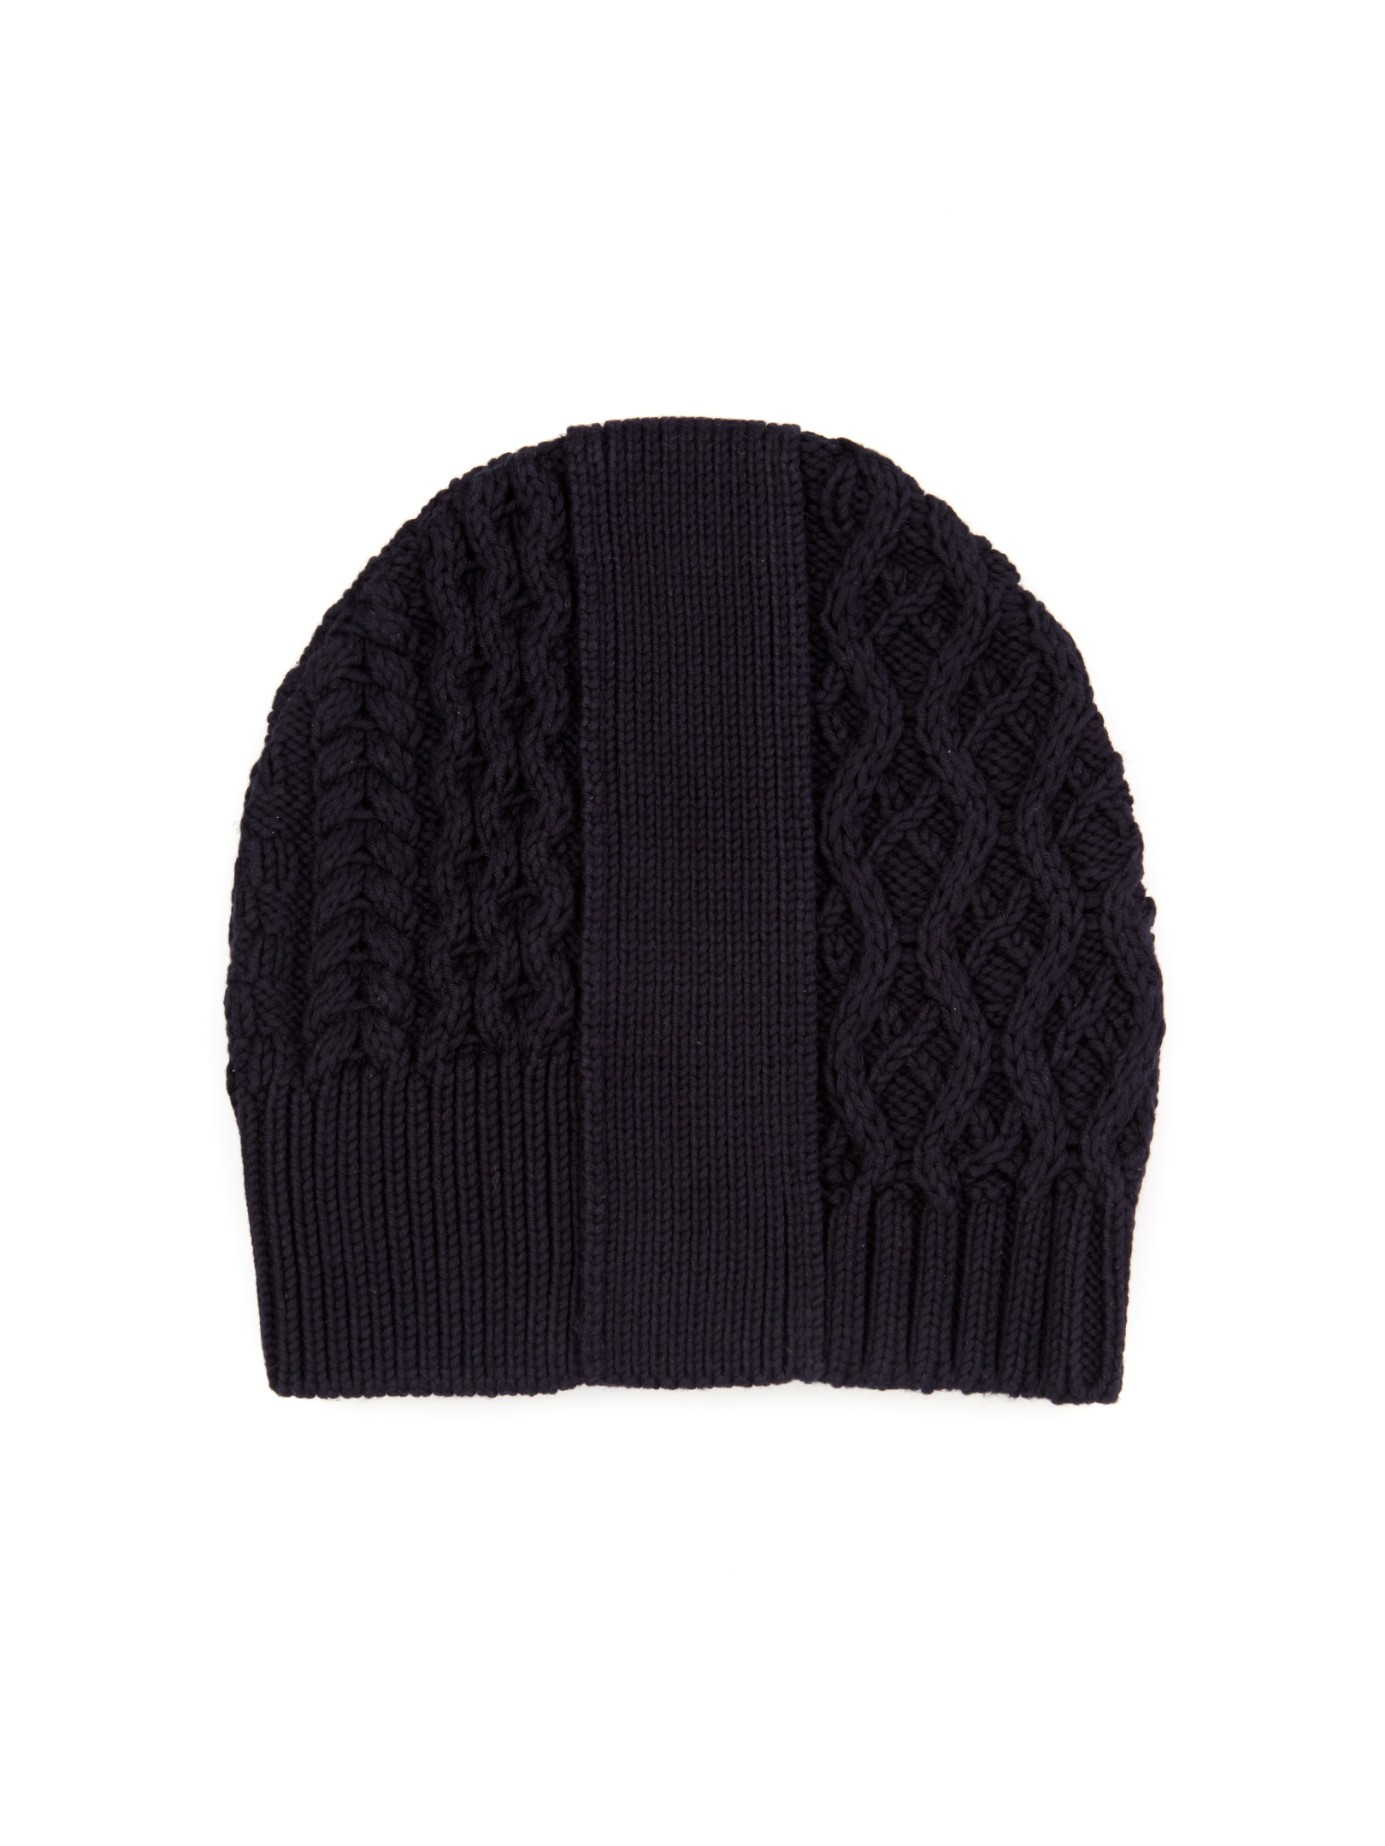 cc63d7c3daa Lyst - Maison Margiela Knitted Beanie Hat in Blue for Men